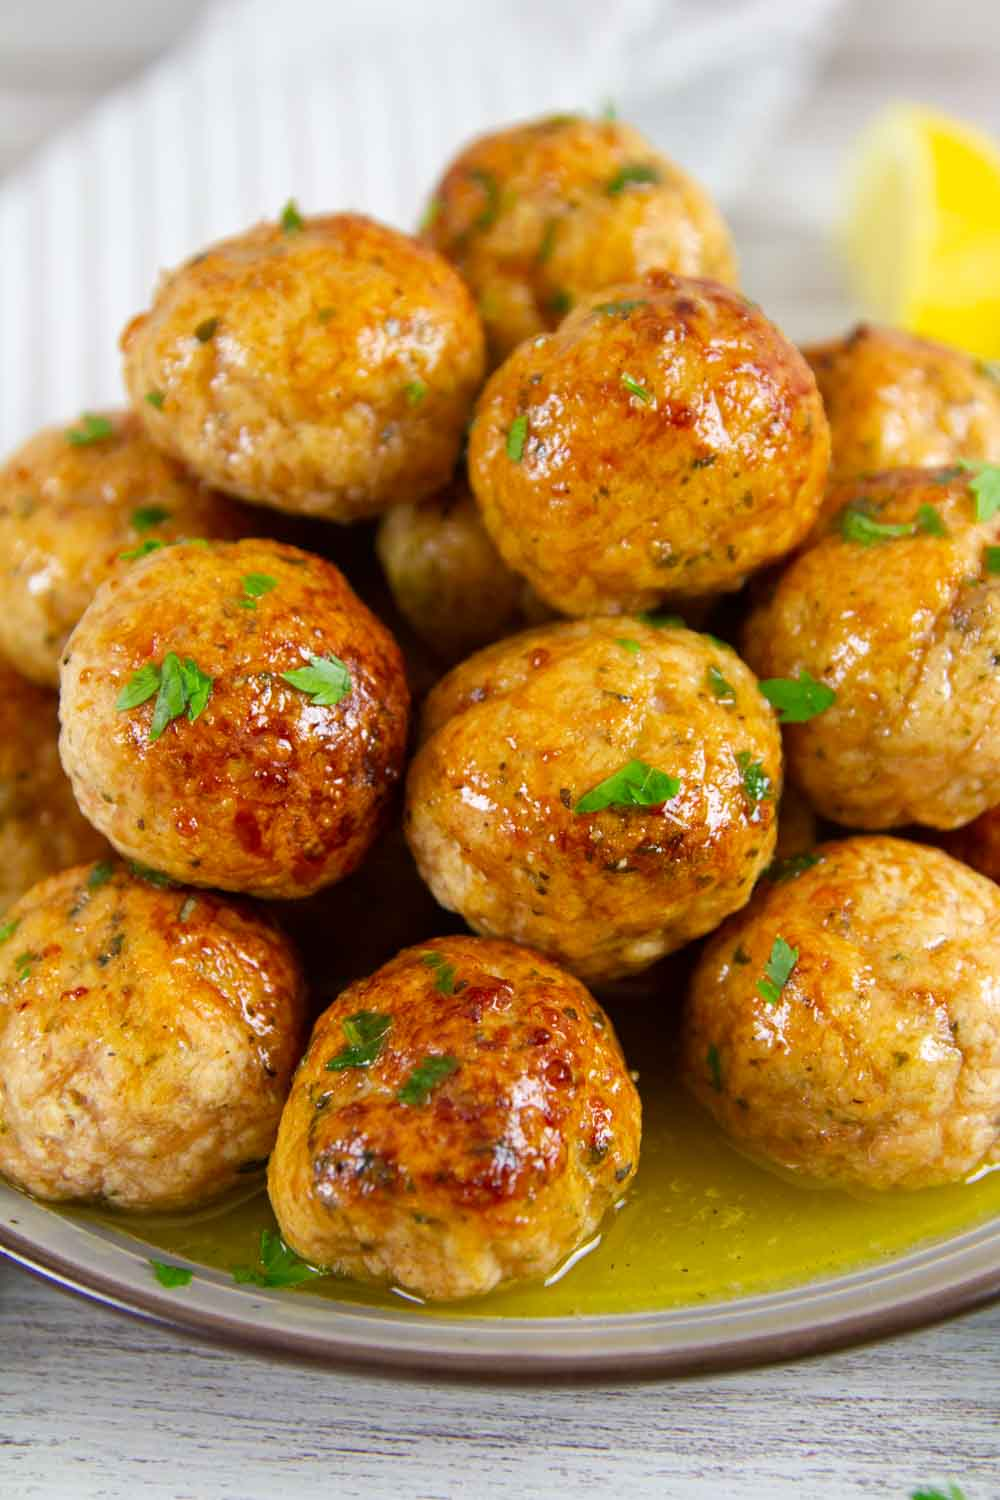 These Healthy Baked Chicken Meatballs are made with ground chicken and simple pantry ingredients and baked to crispy perfection in the oven. They're a perfect low carb dinner!